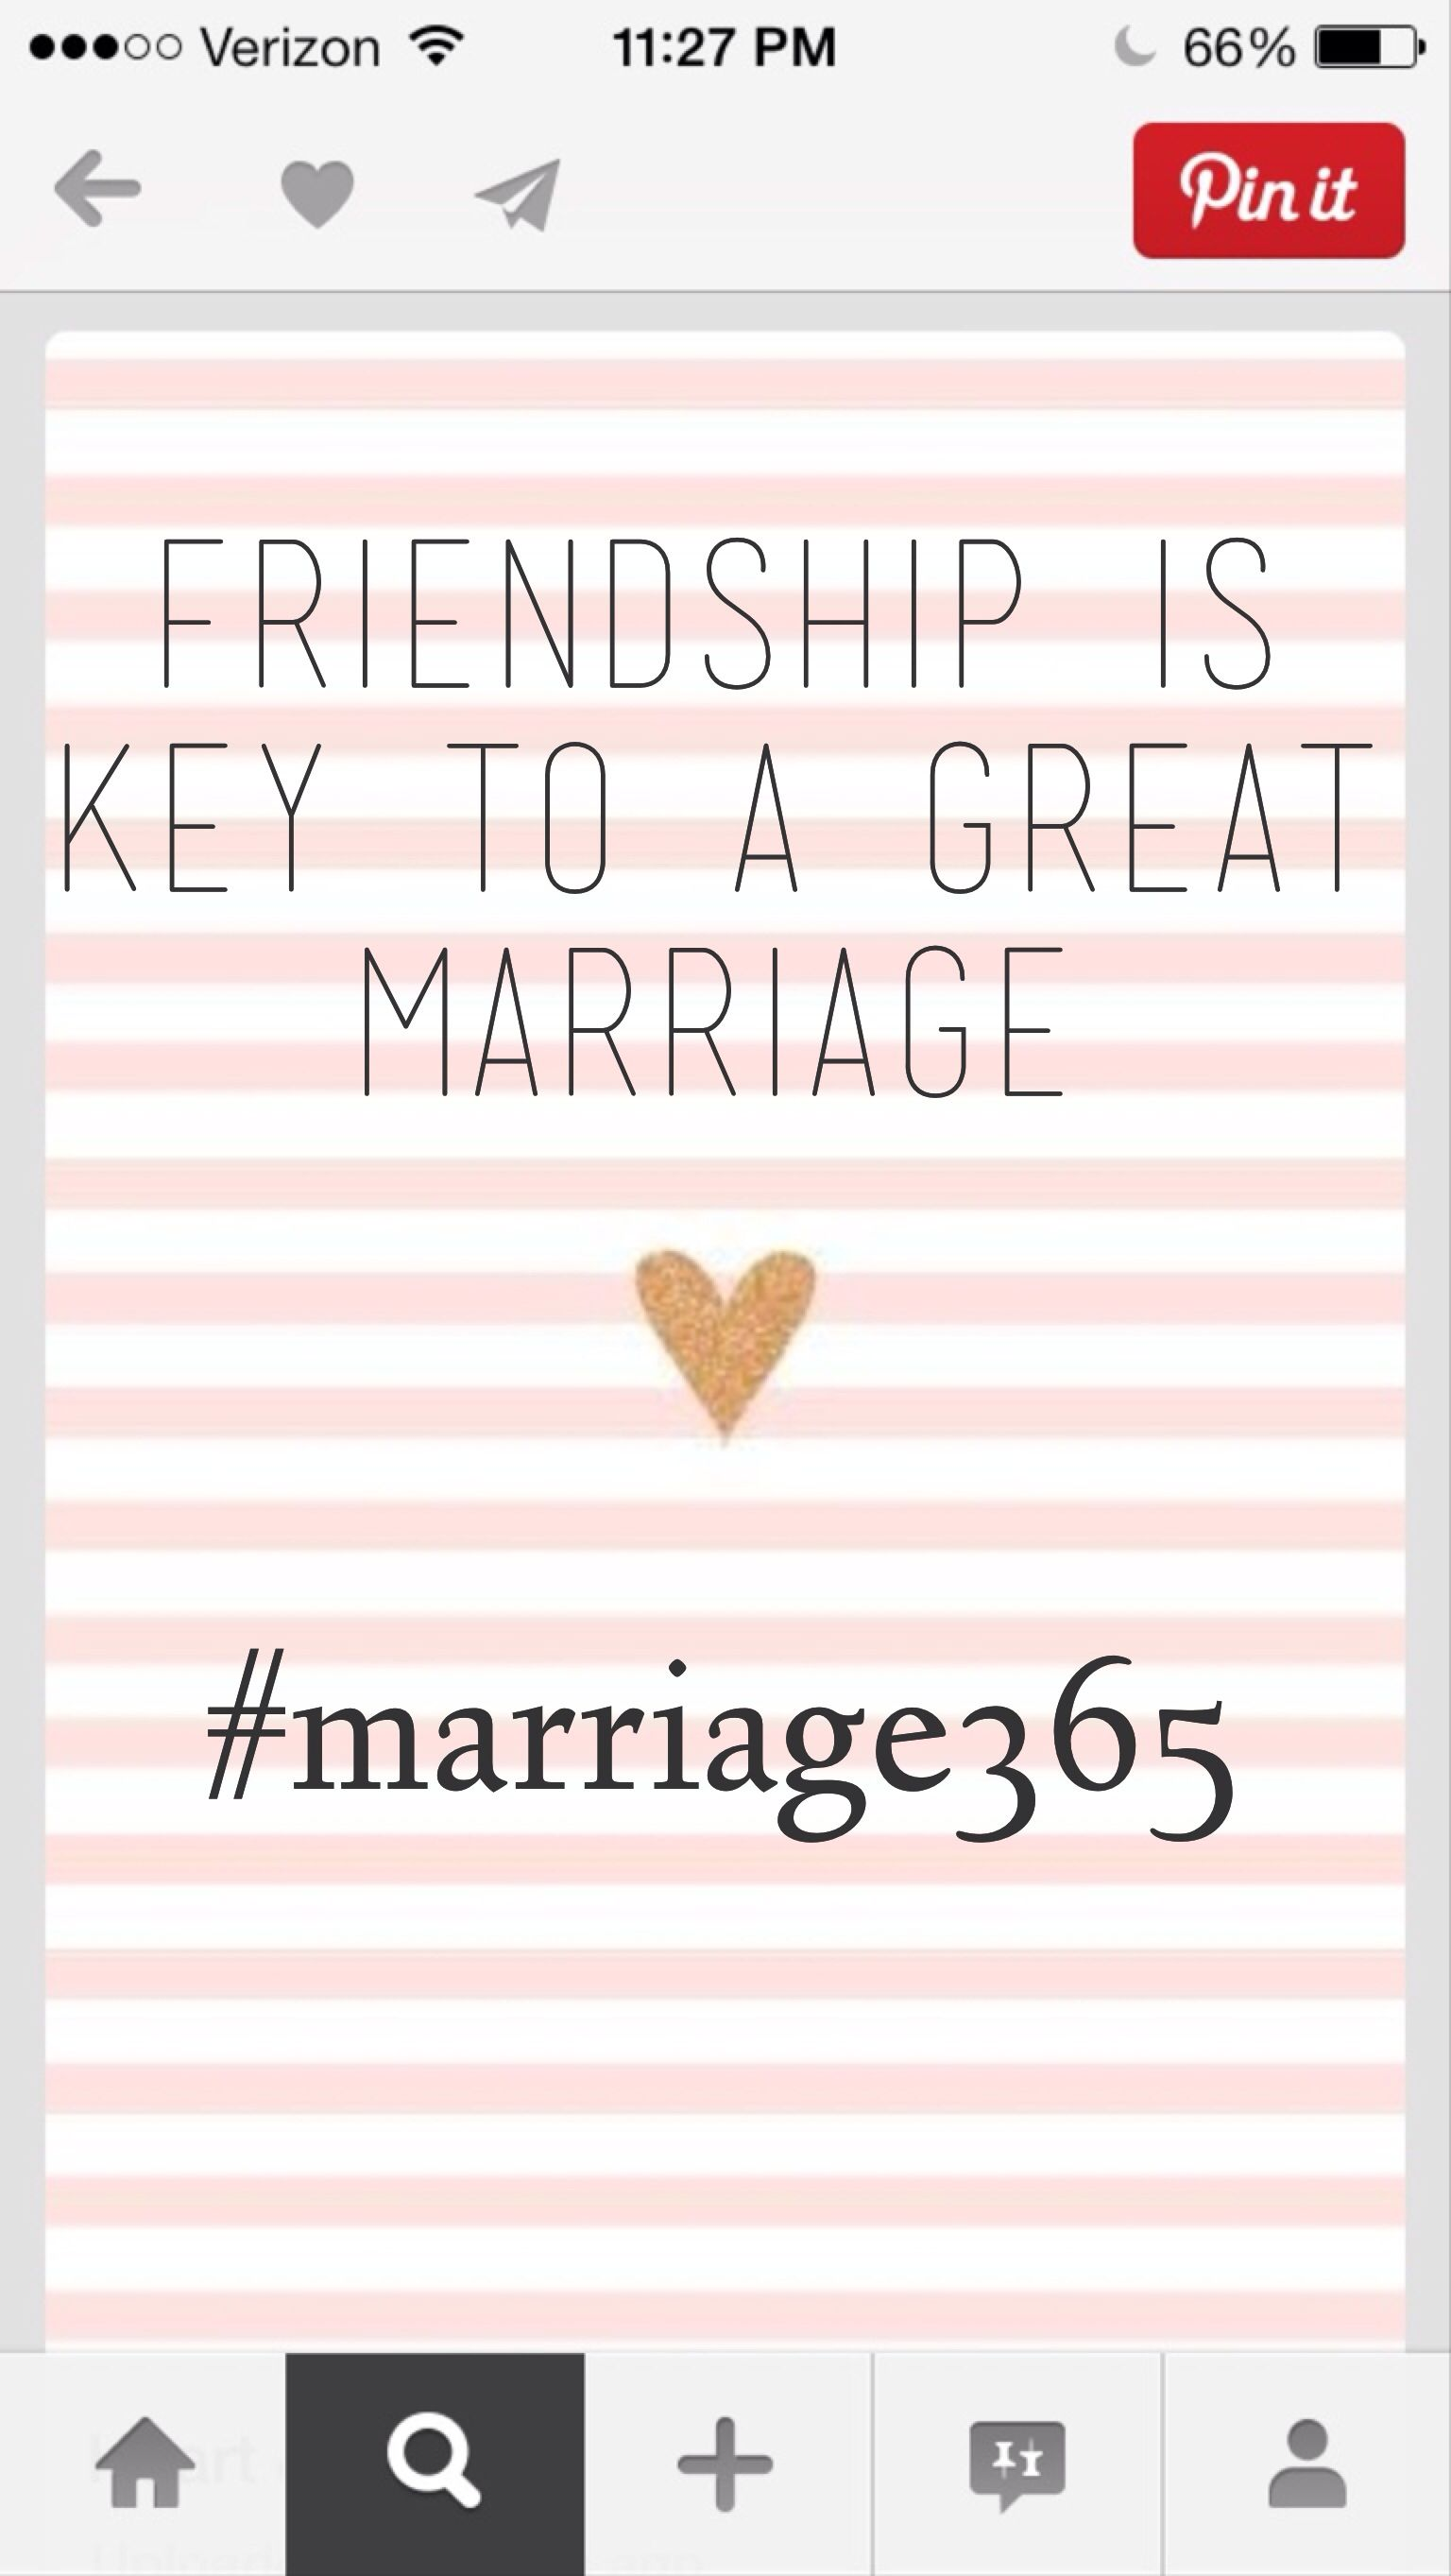 Friendship. Marriage365. Love. Marriage quote. Marriage